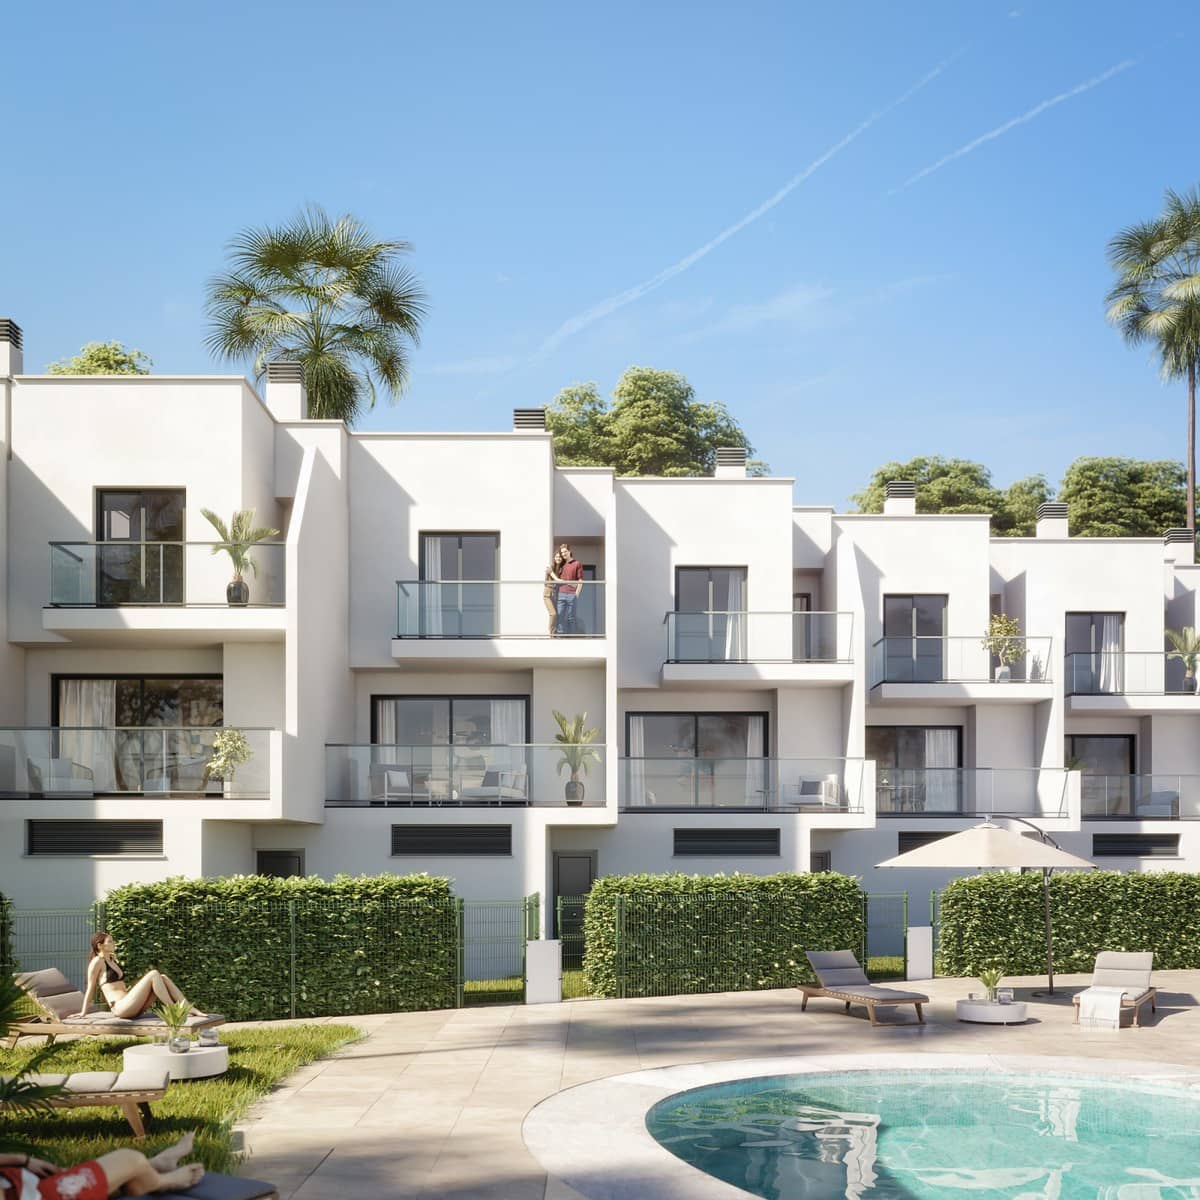 3 bedroom Townhouse for sale in Benalmadena with pool garage - € 275,000 (Ref: 5125528)